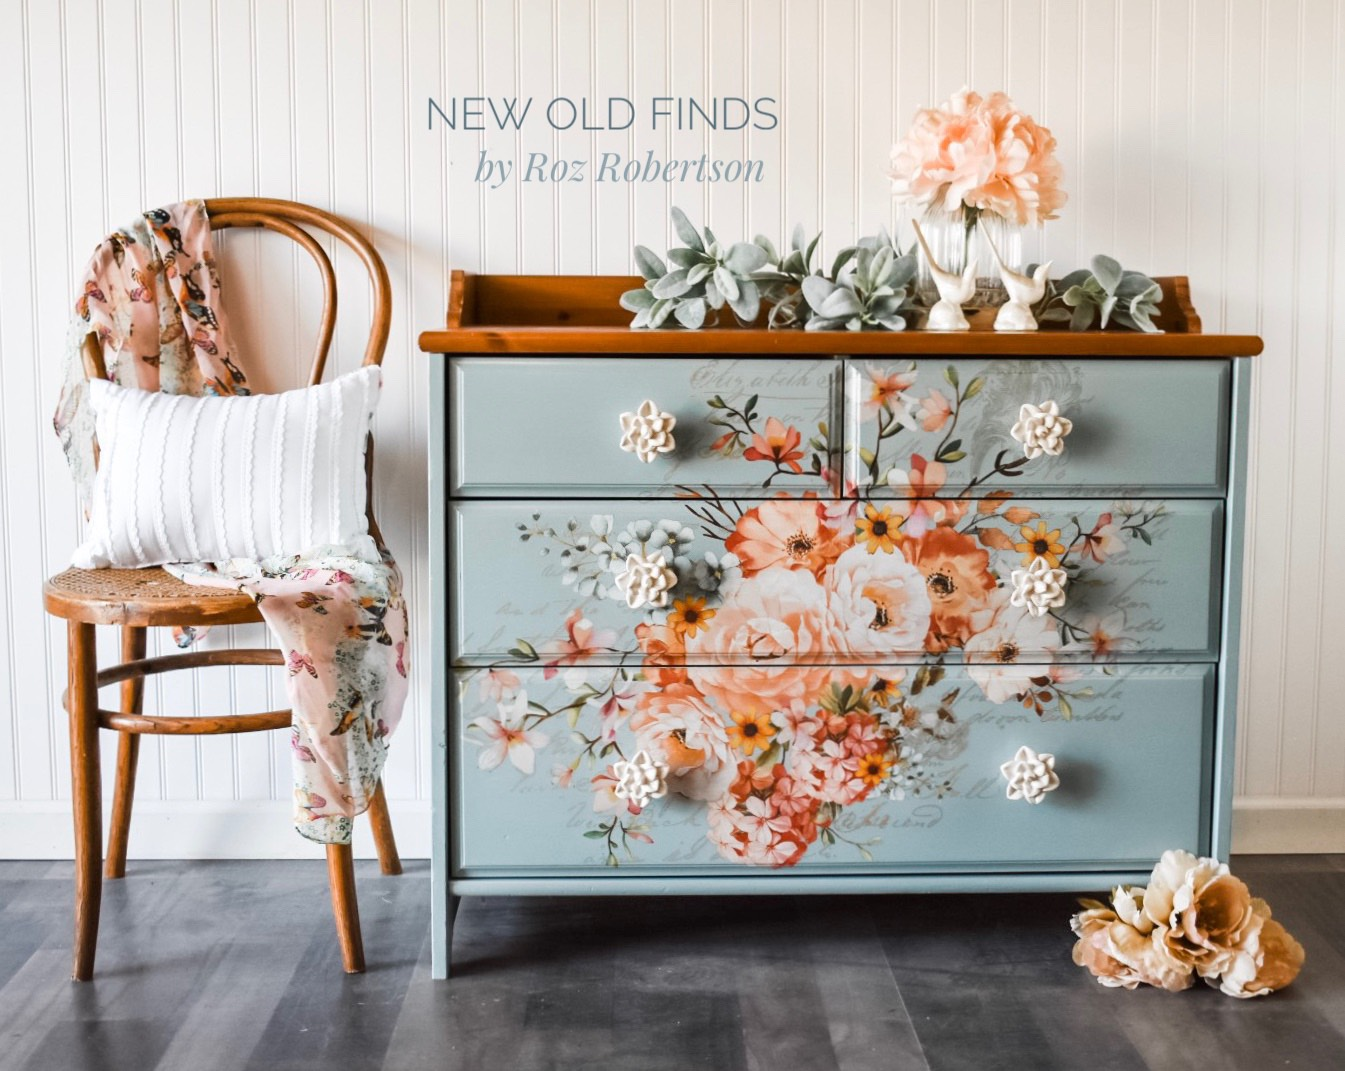 This blue and floral beauty blew up our Instagram feed! The color, the knobs and placement of the transfer were just perfect and everyone loved it. The wood top gives it warmth along with the addition of the Rose Celebration Decor Transfer™.. Roz also added some of the images to the sides to tie it all in-looks amazing!